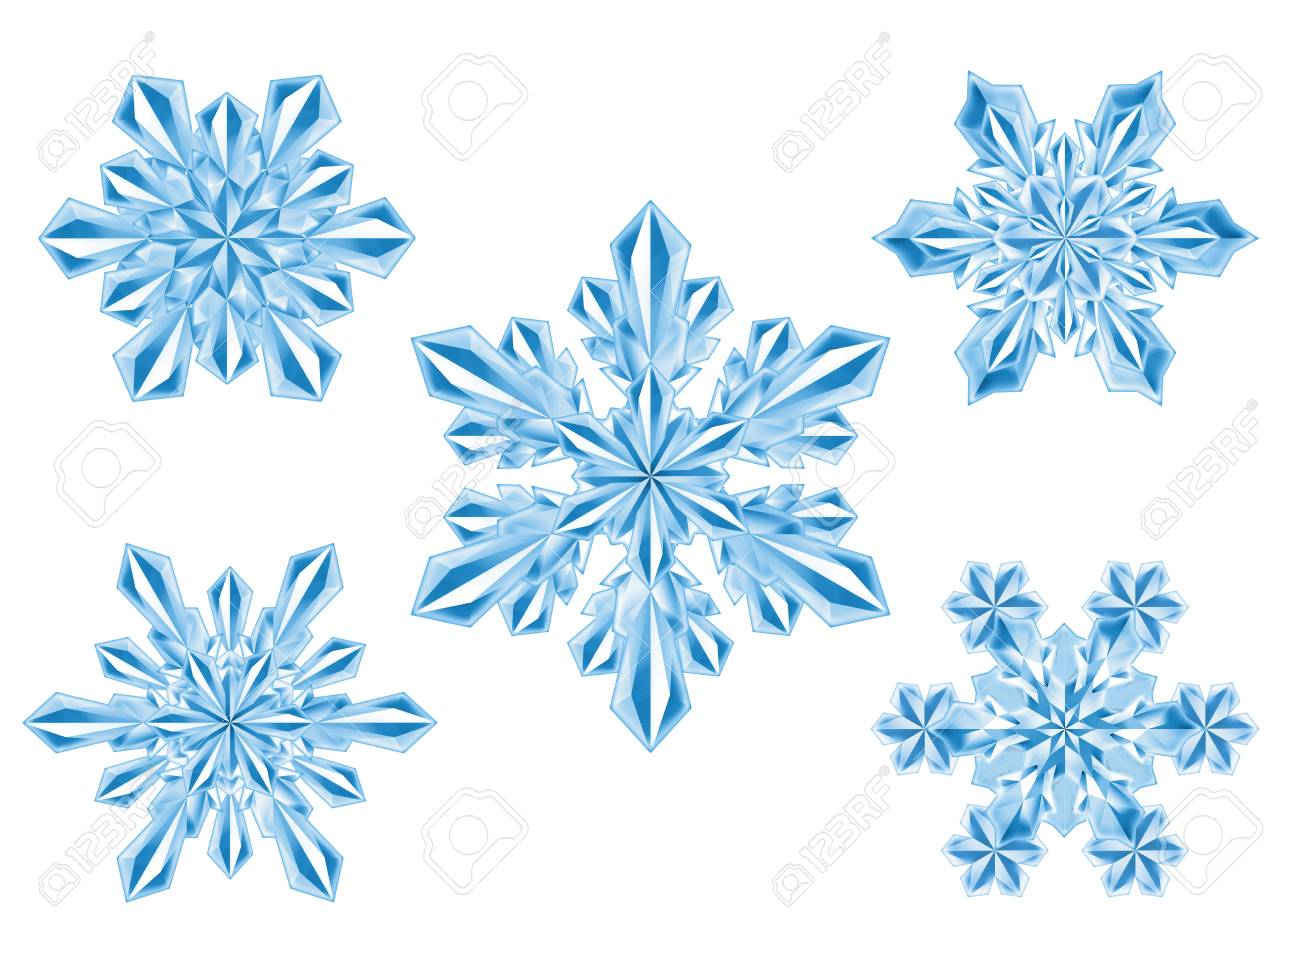 crystal snowflake set new year christmas winter clip art isolated on white